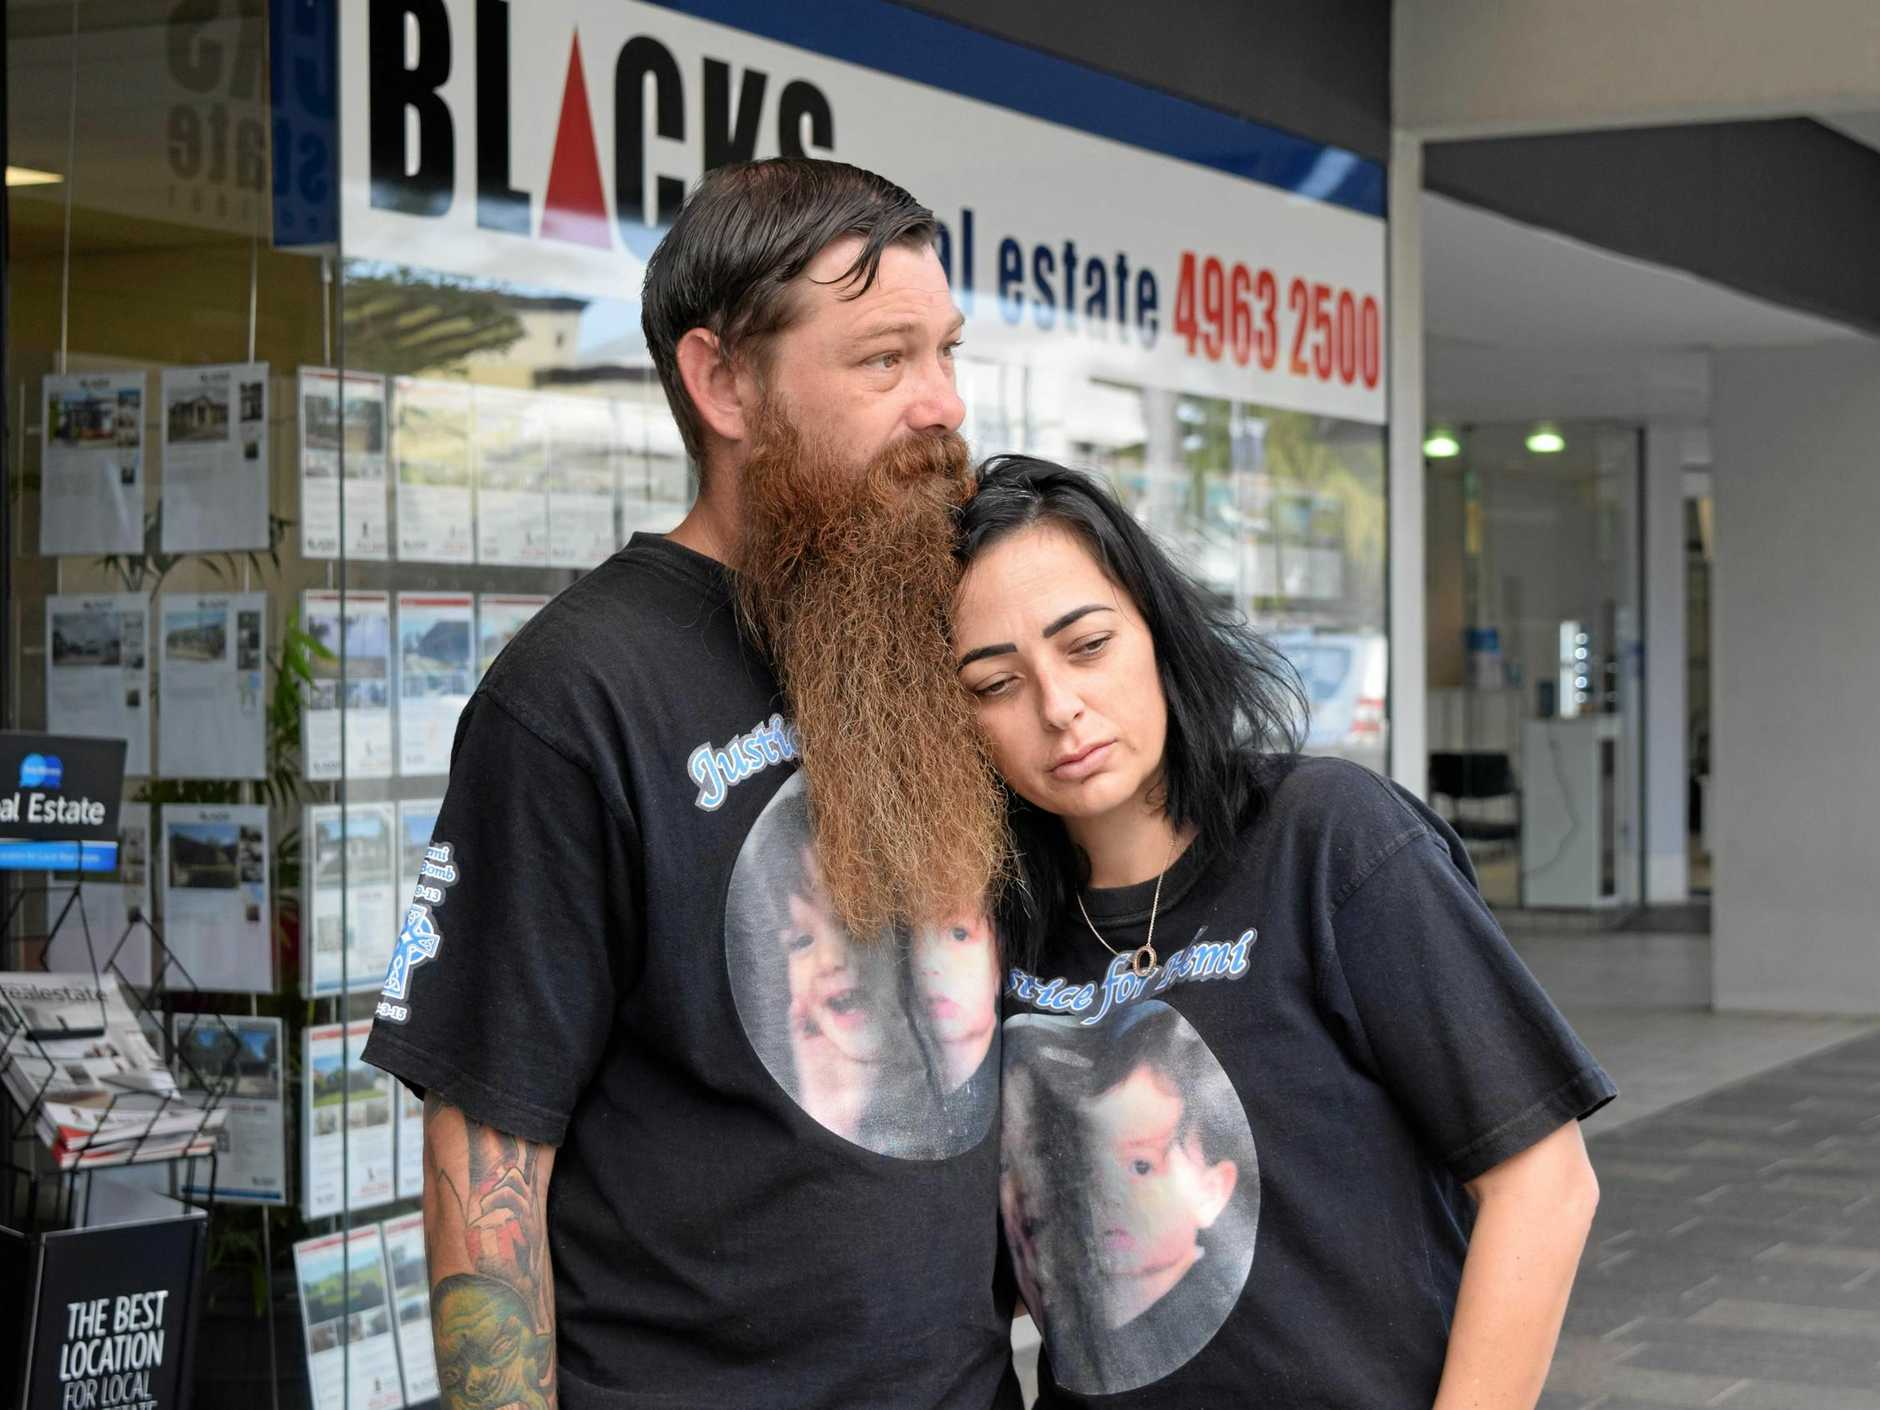 Shane Burke and Kerri-Ann Goodwin are fighting to keep the man who callously killed their son in jail.